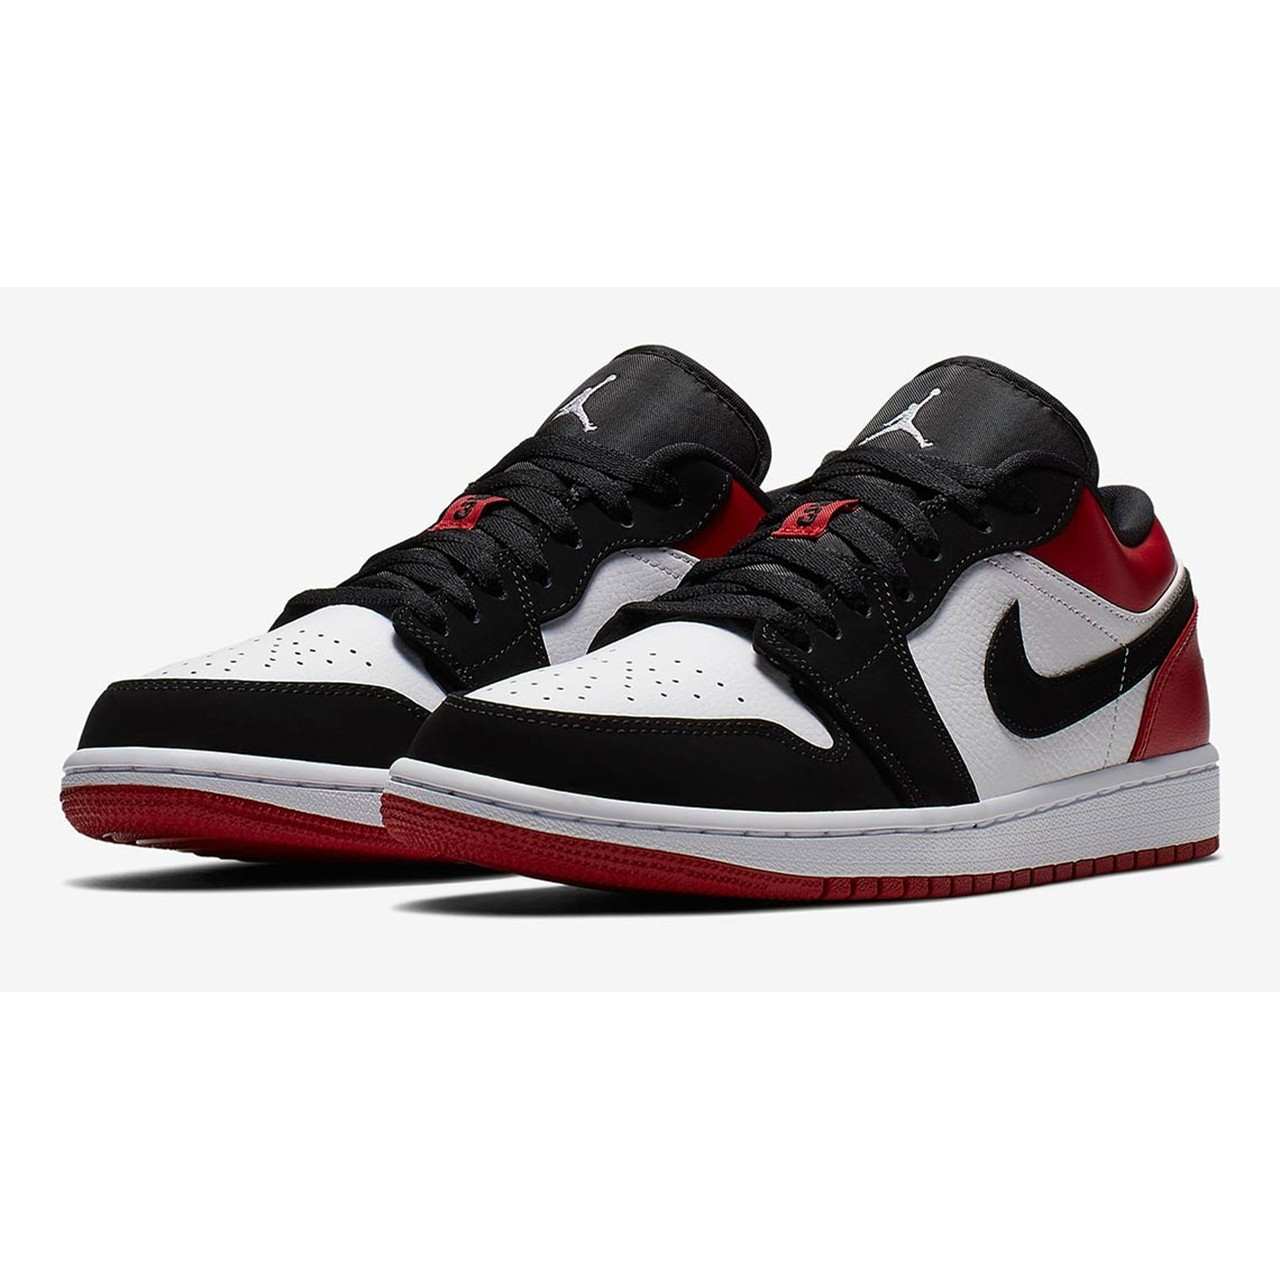 Air Jordan 1 Low (Black Toe)